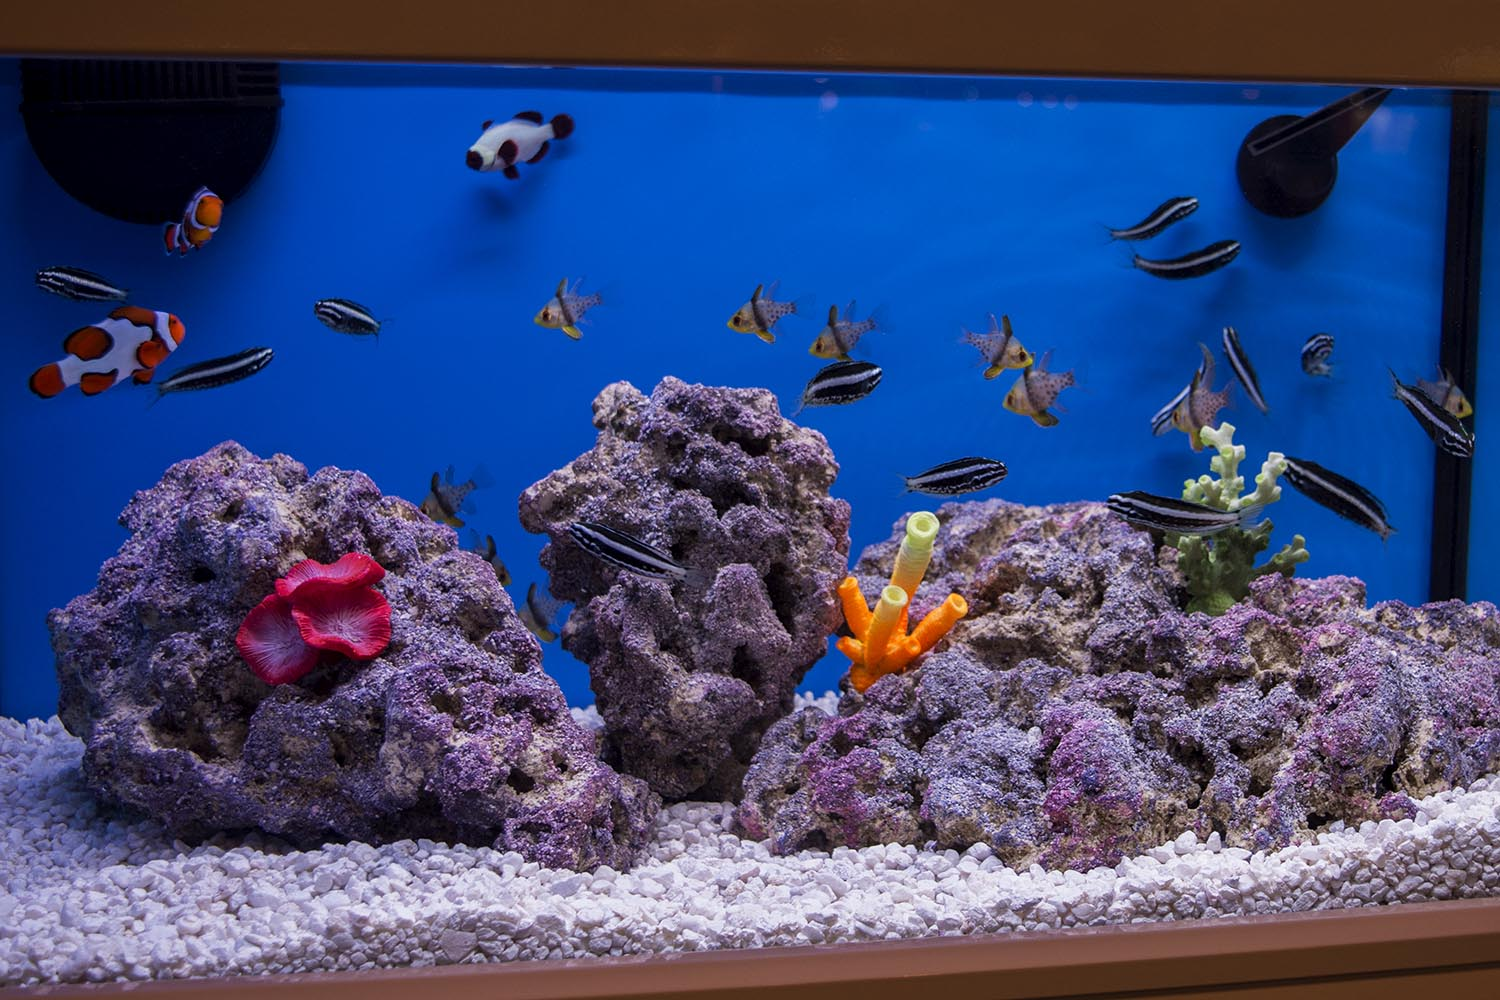 Freshwater aquarium fish orlando - A Display Aquarium Featuring Captive Bred Fish From Ora Including Kamohara Blennies Pajama Cardinals